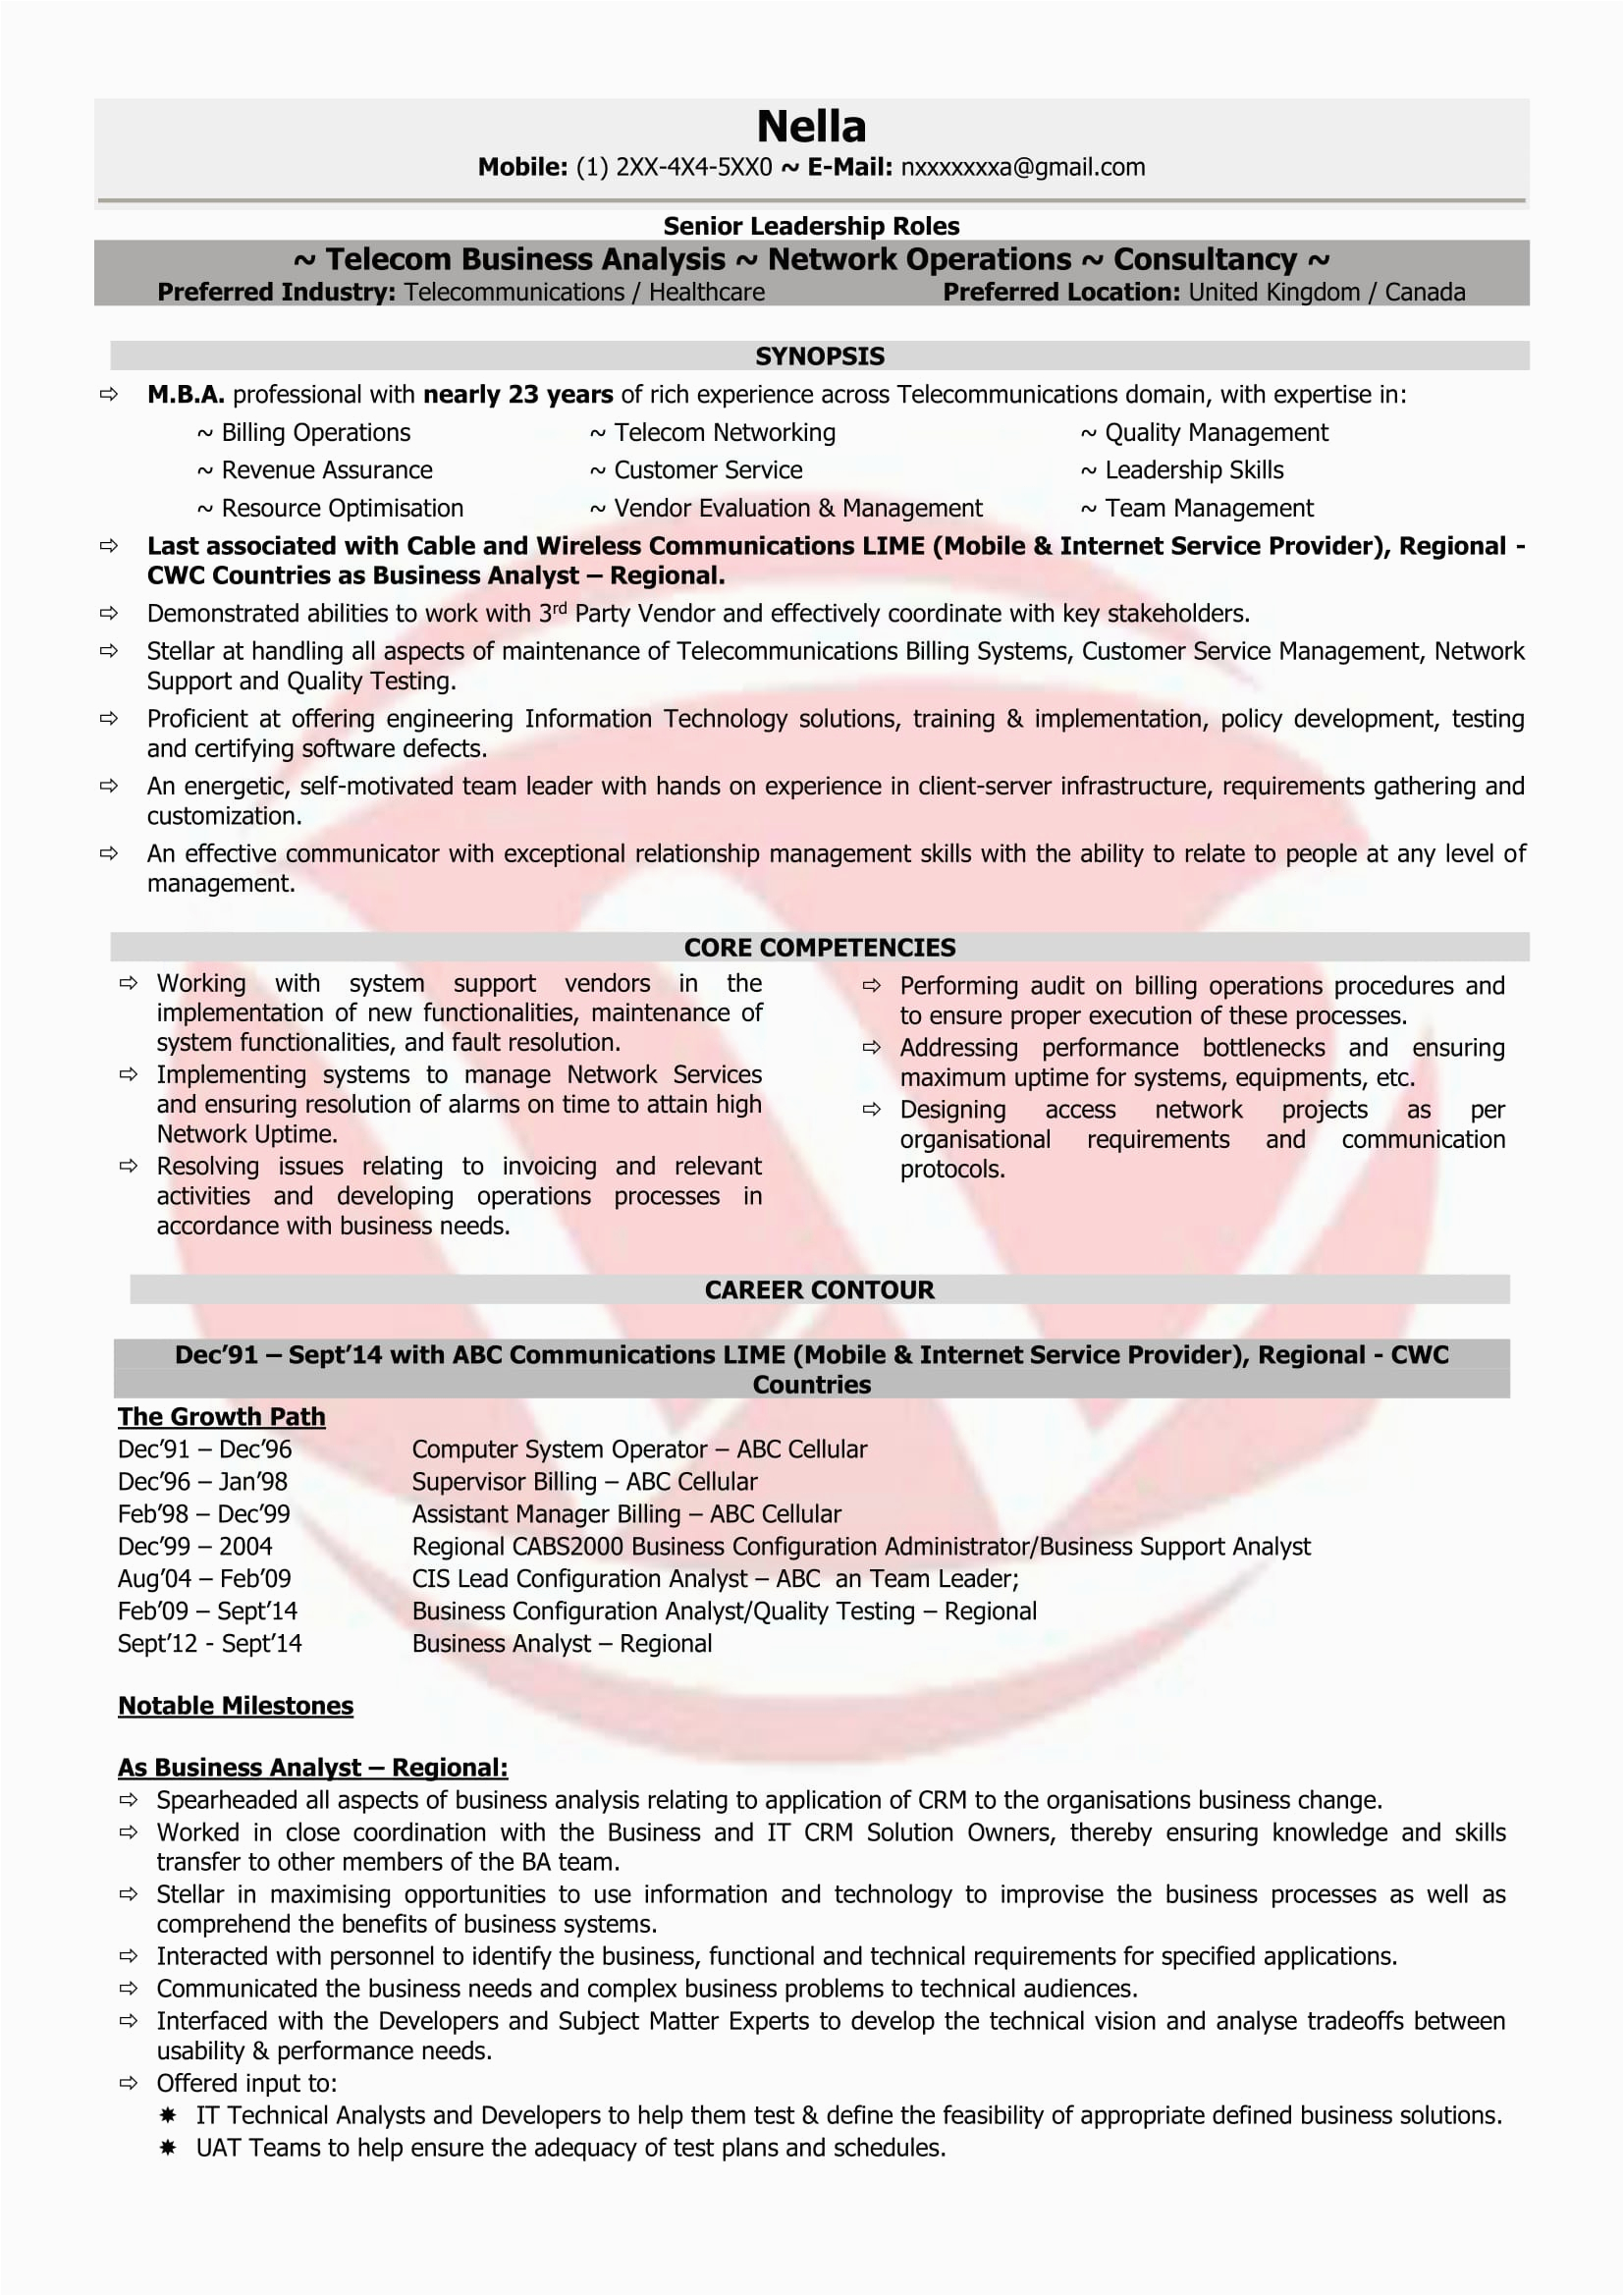 Sample Resume for Telecom Operations Manager Resume for Network Operation Enginer